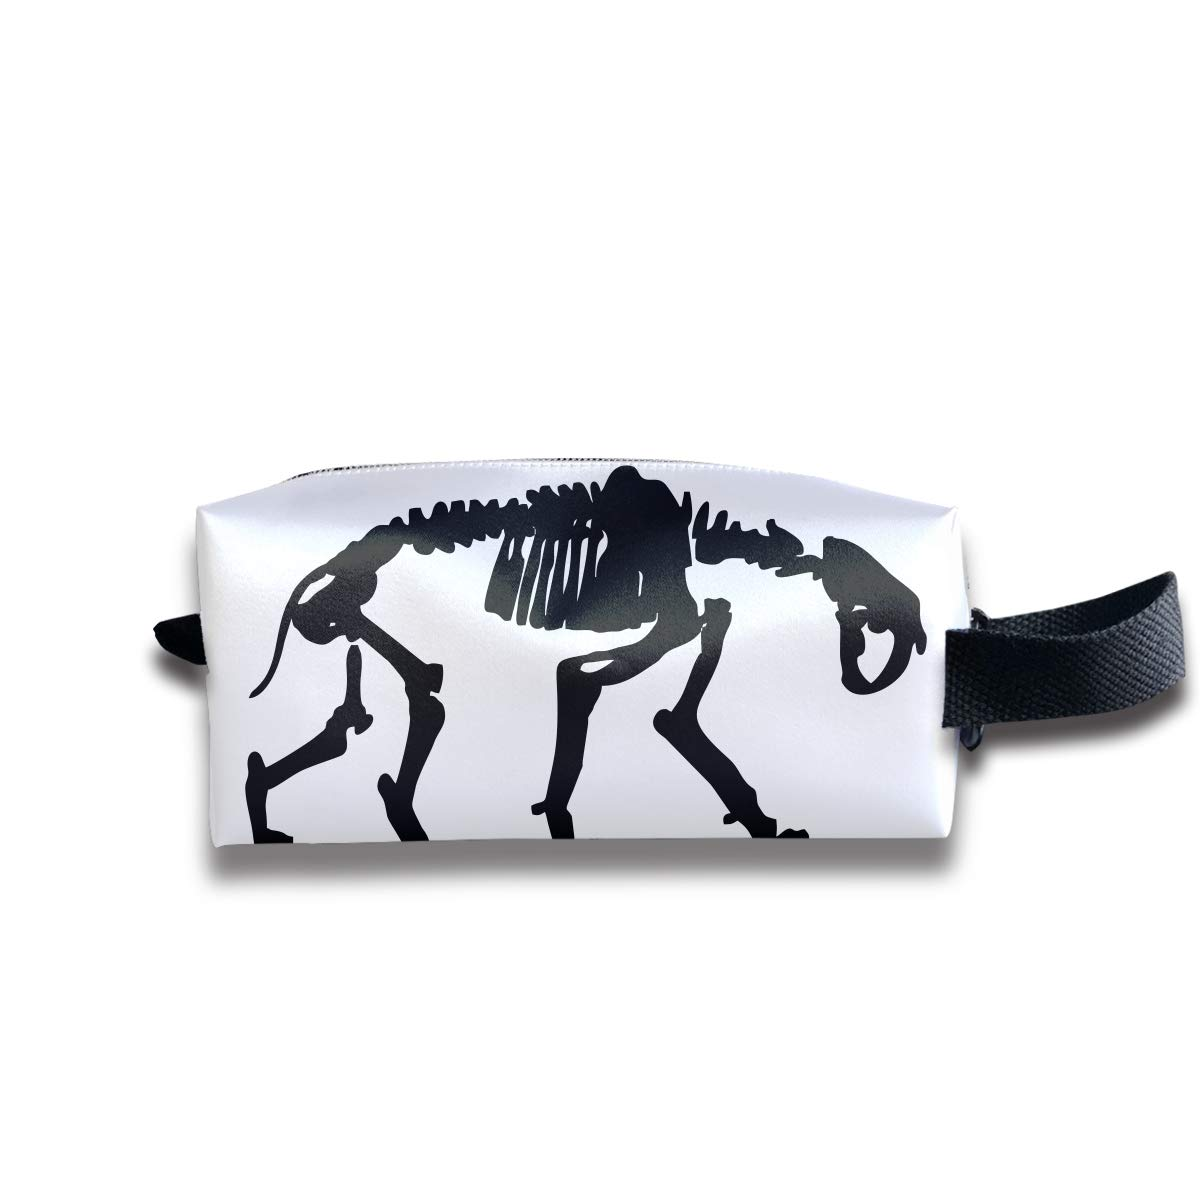 Makeup Cosmetic Bag Animal Black and White Logo Zip Travel Portable Storage Pouch for Mens Womens by Cooby Roman